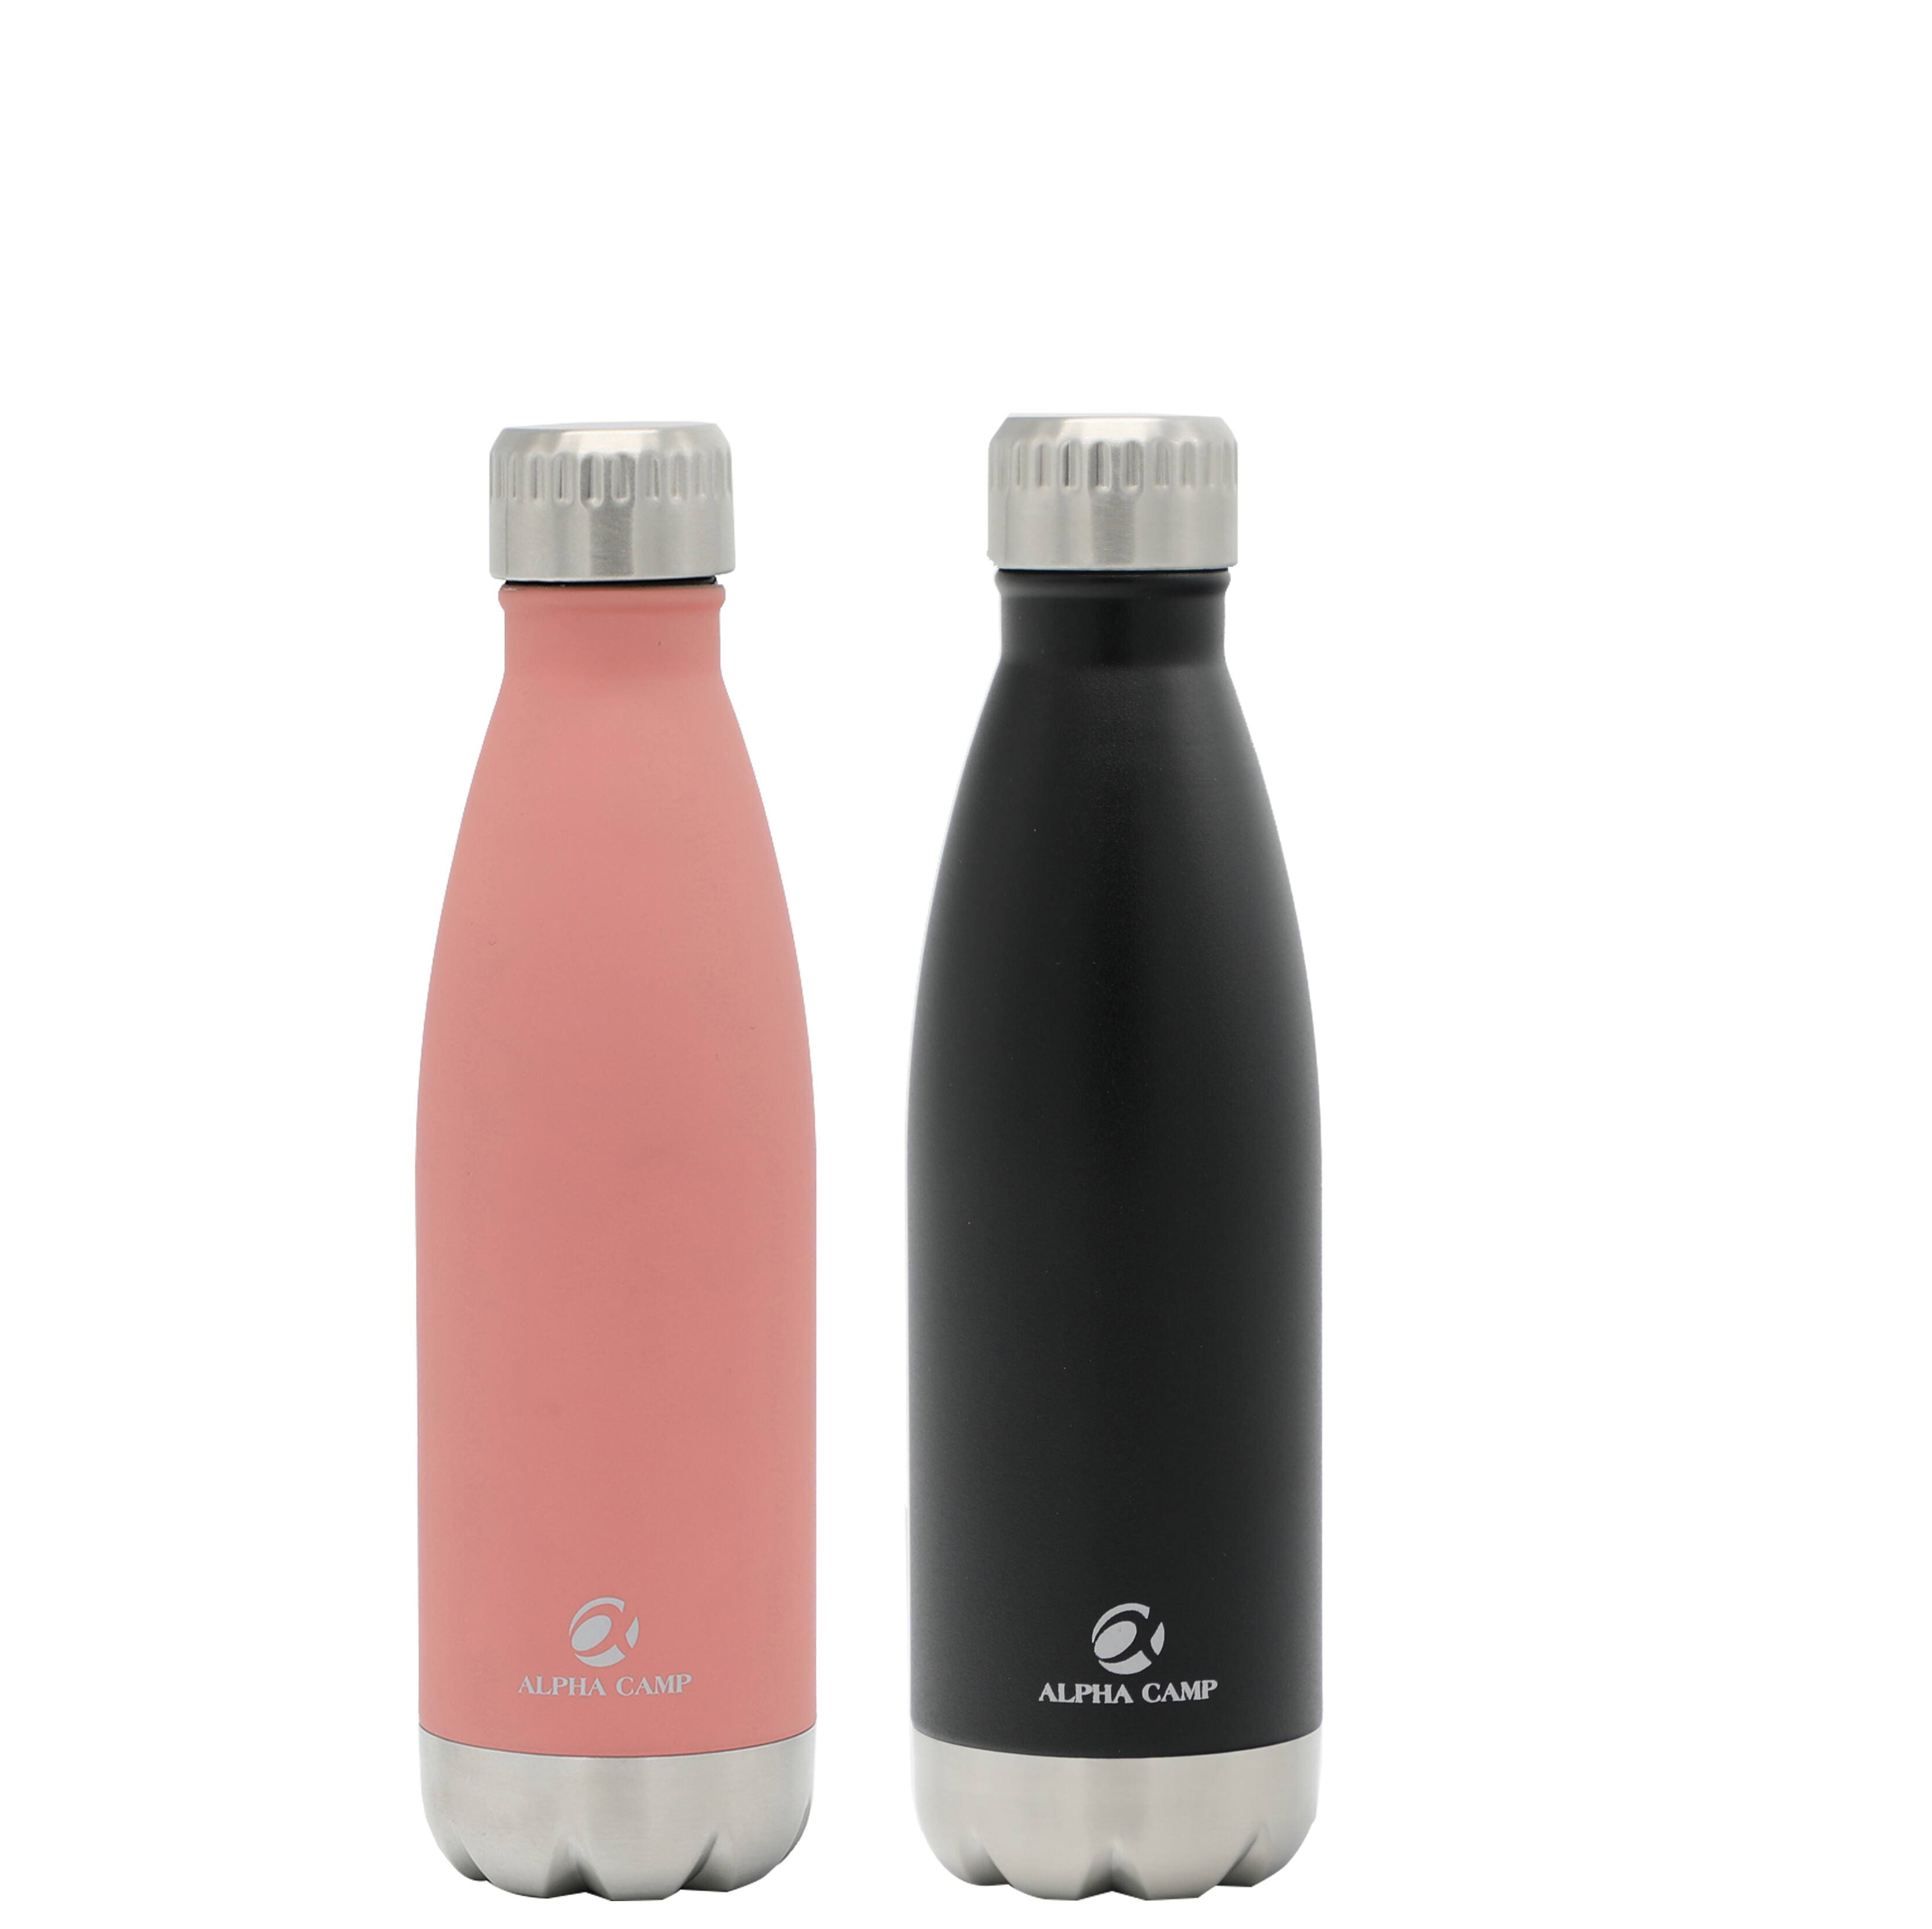 17-Oz Stainless Steel Water Bottle, Buy One Get One Free $13.99 + Free Shipping